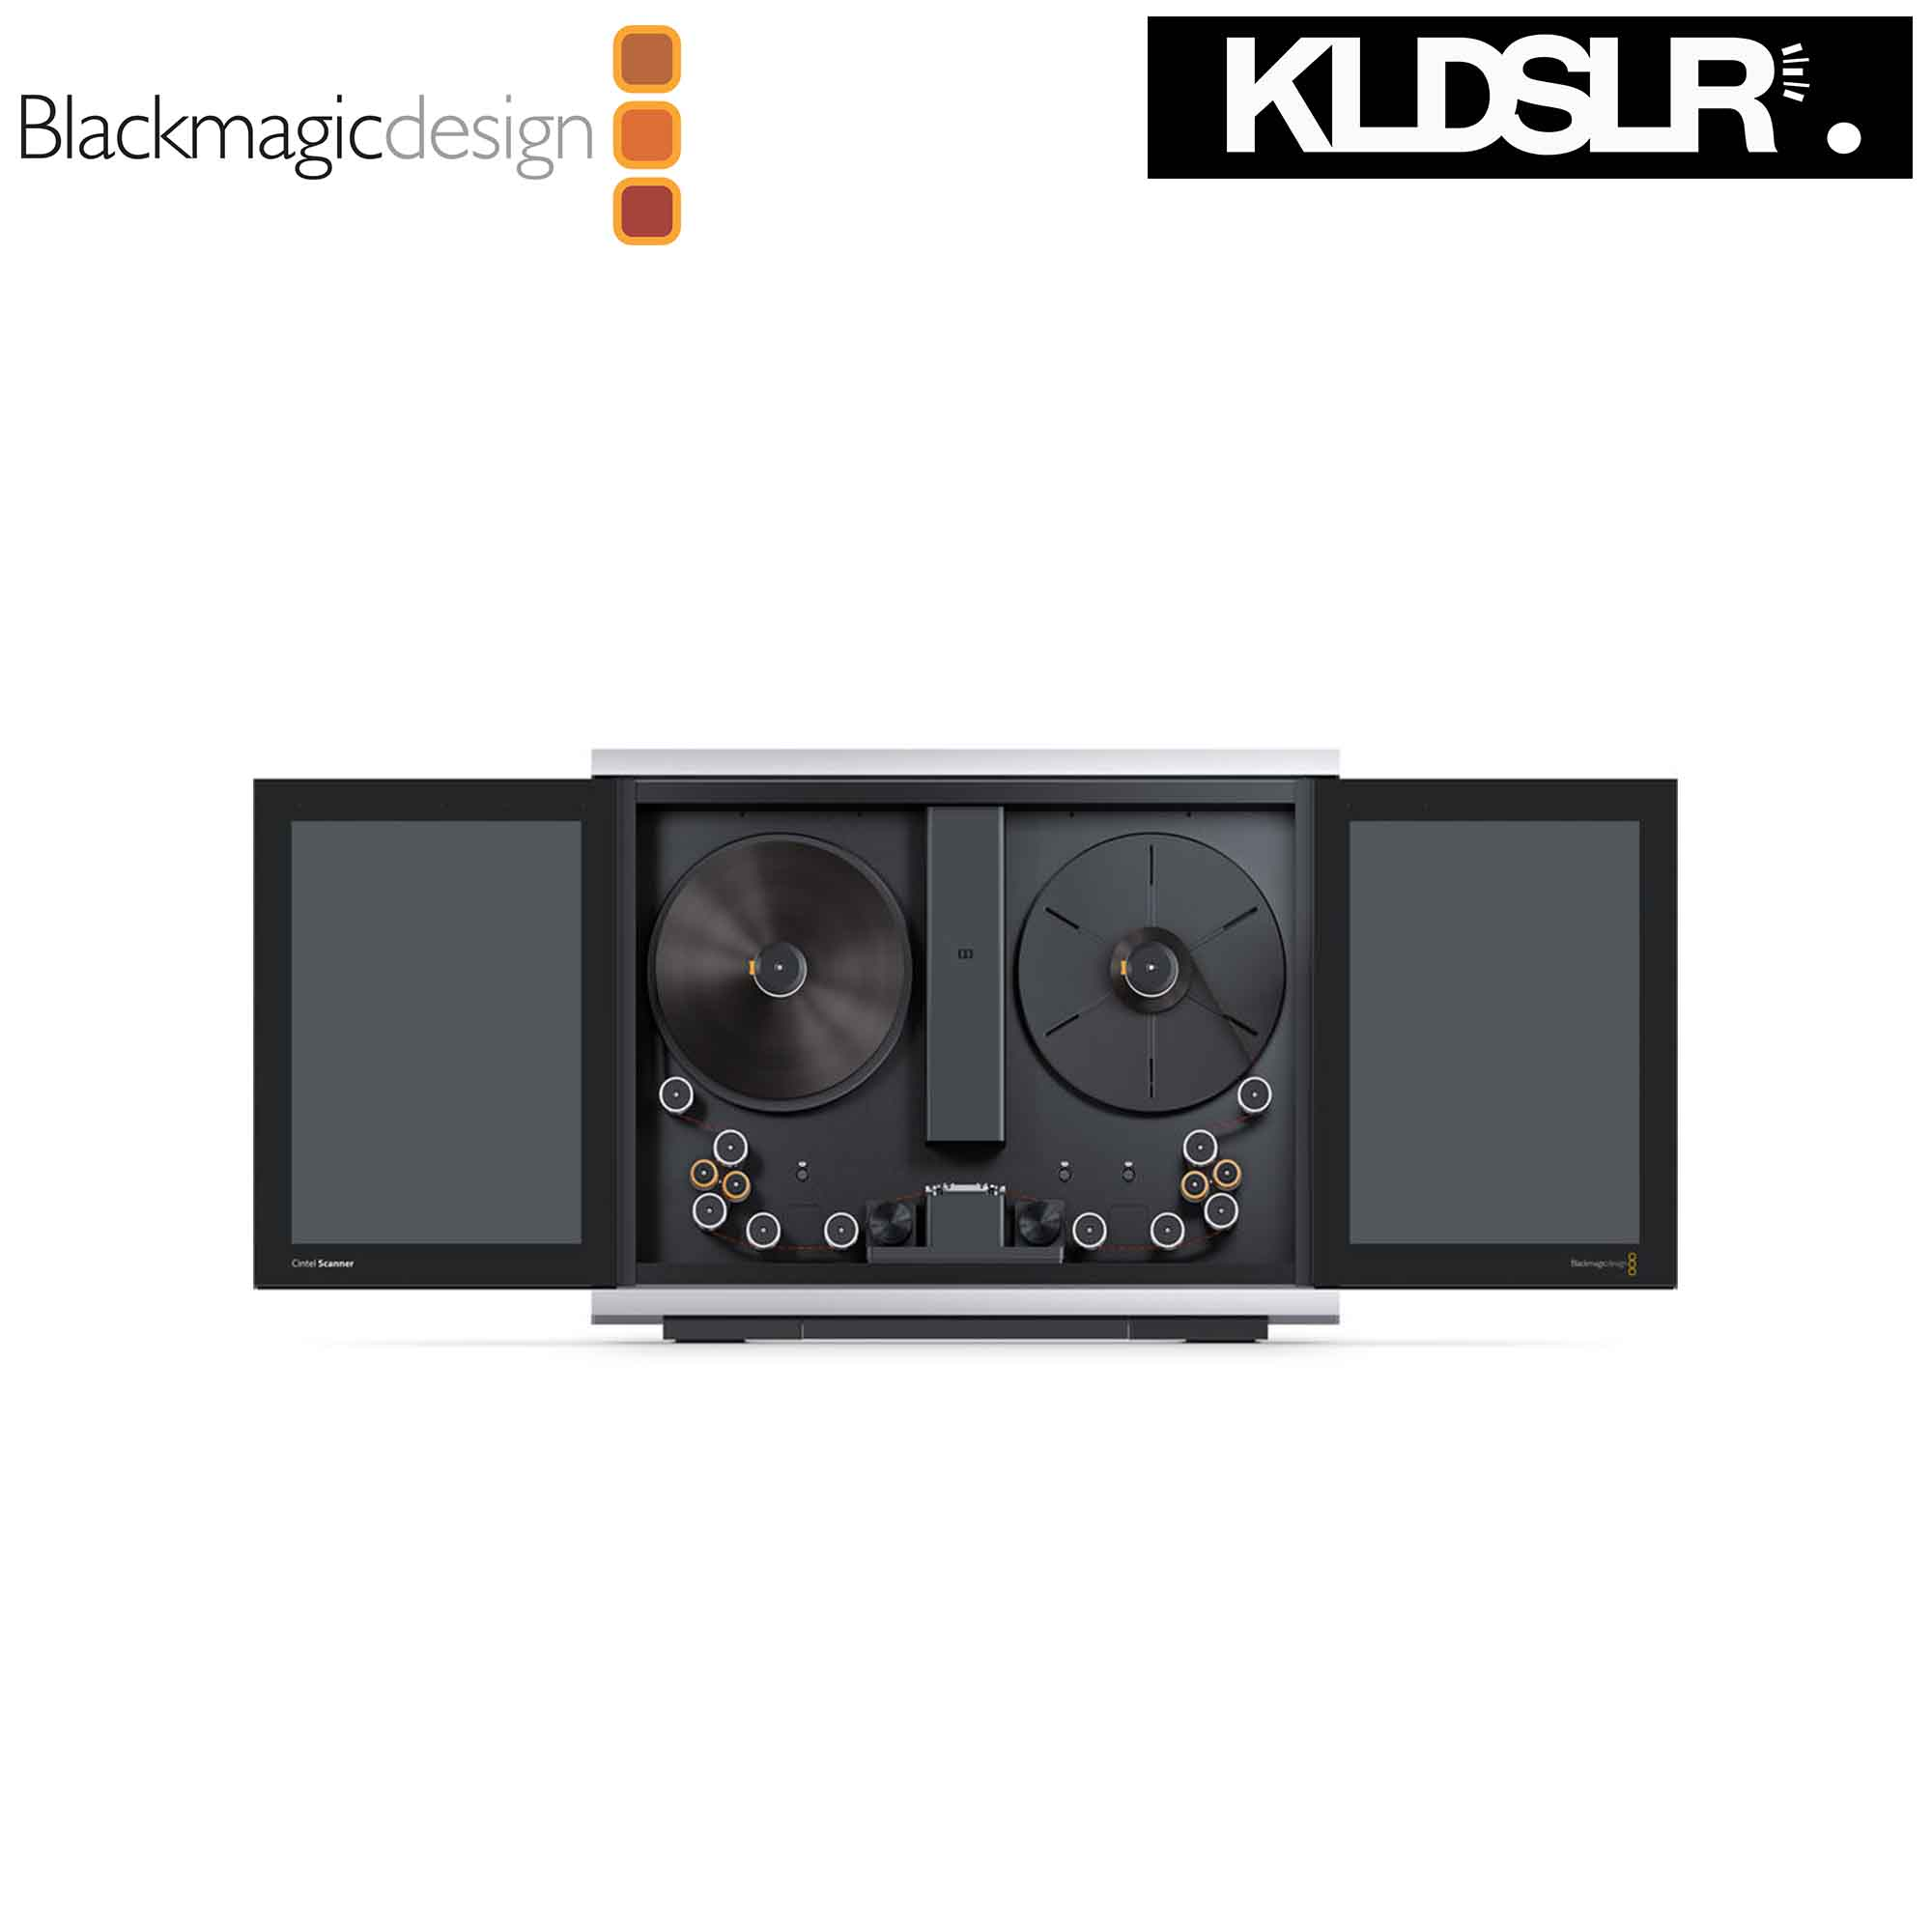 Blackmagic Design Cintel Scanner 2 with 35mm Gate (Blackmagic Malaysia)